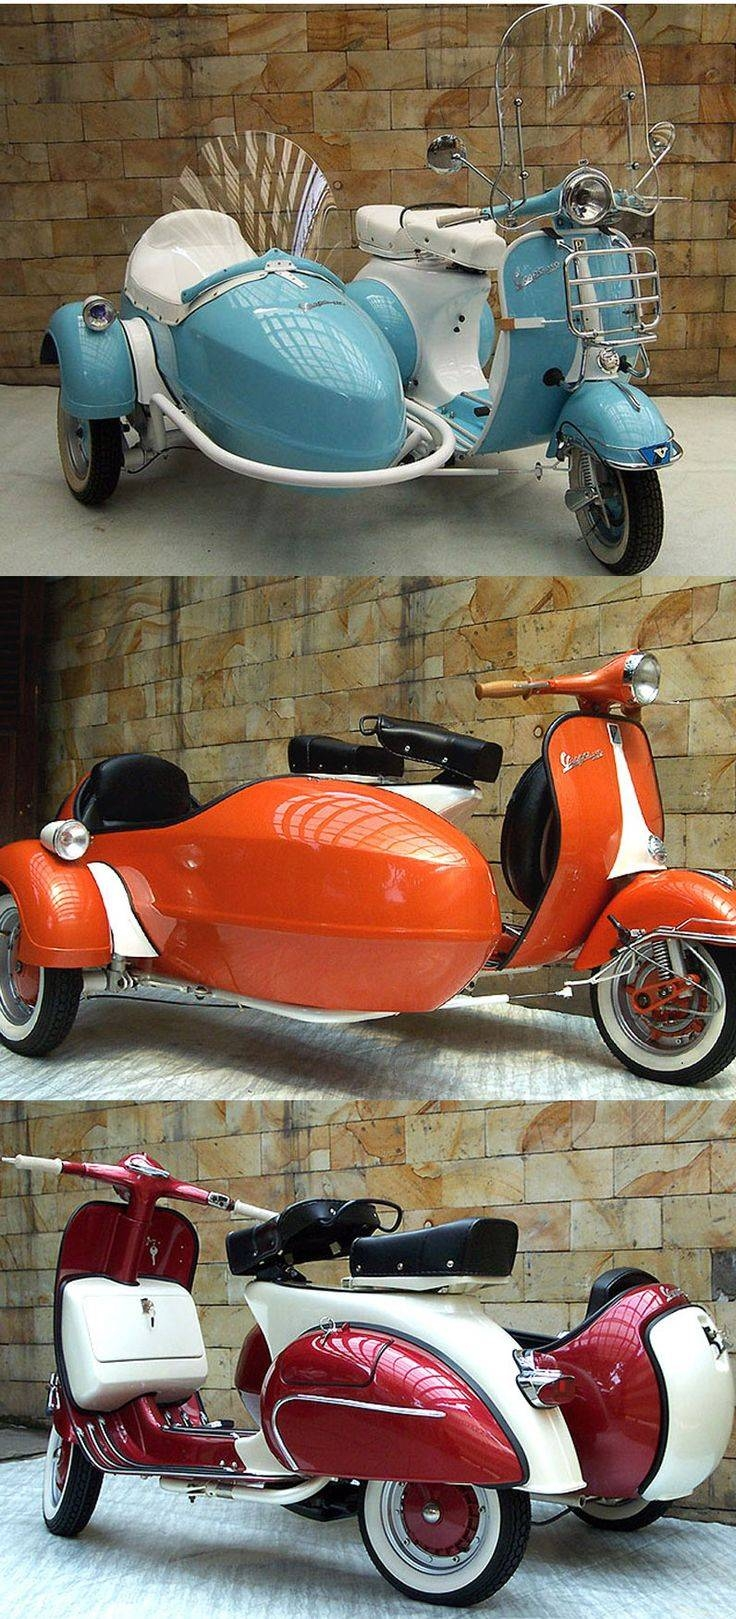 Best 25+ Vespa Scooters Ideas On Pinterest | Vespa, Vintage Vespa Pertaining To Most Recent Vespa 3D Wall Art (View 8 of 20)